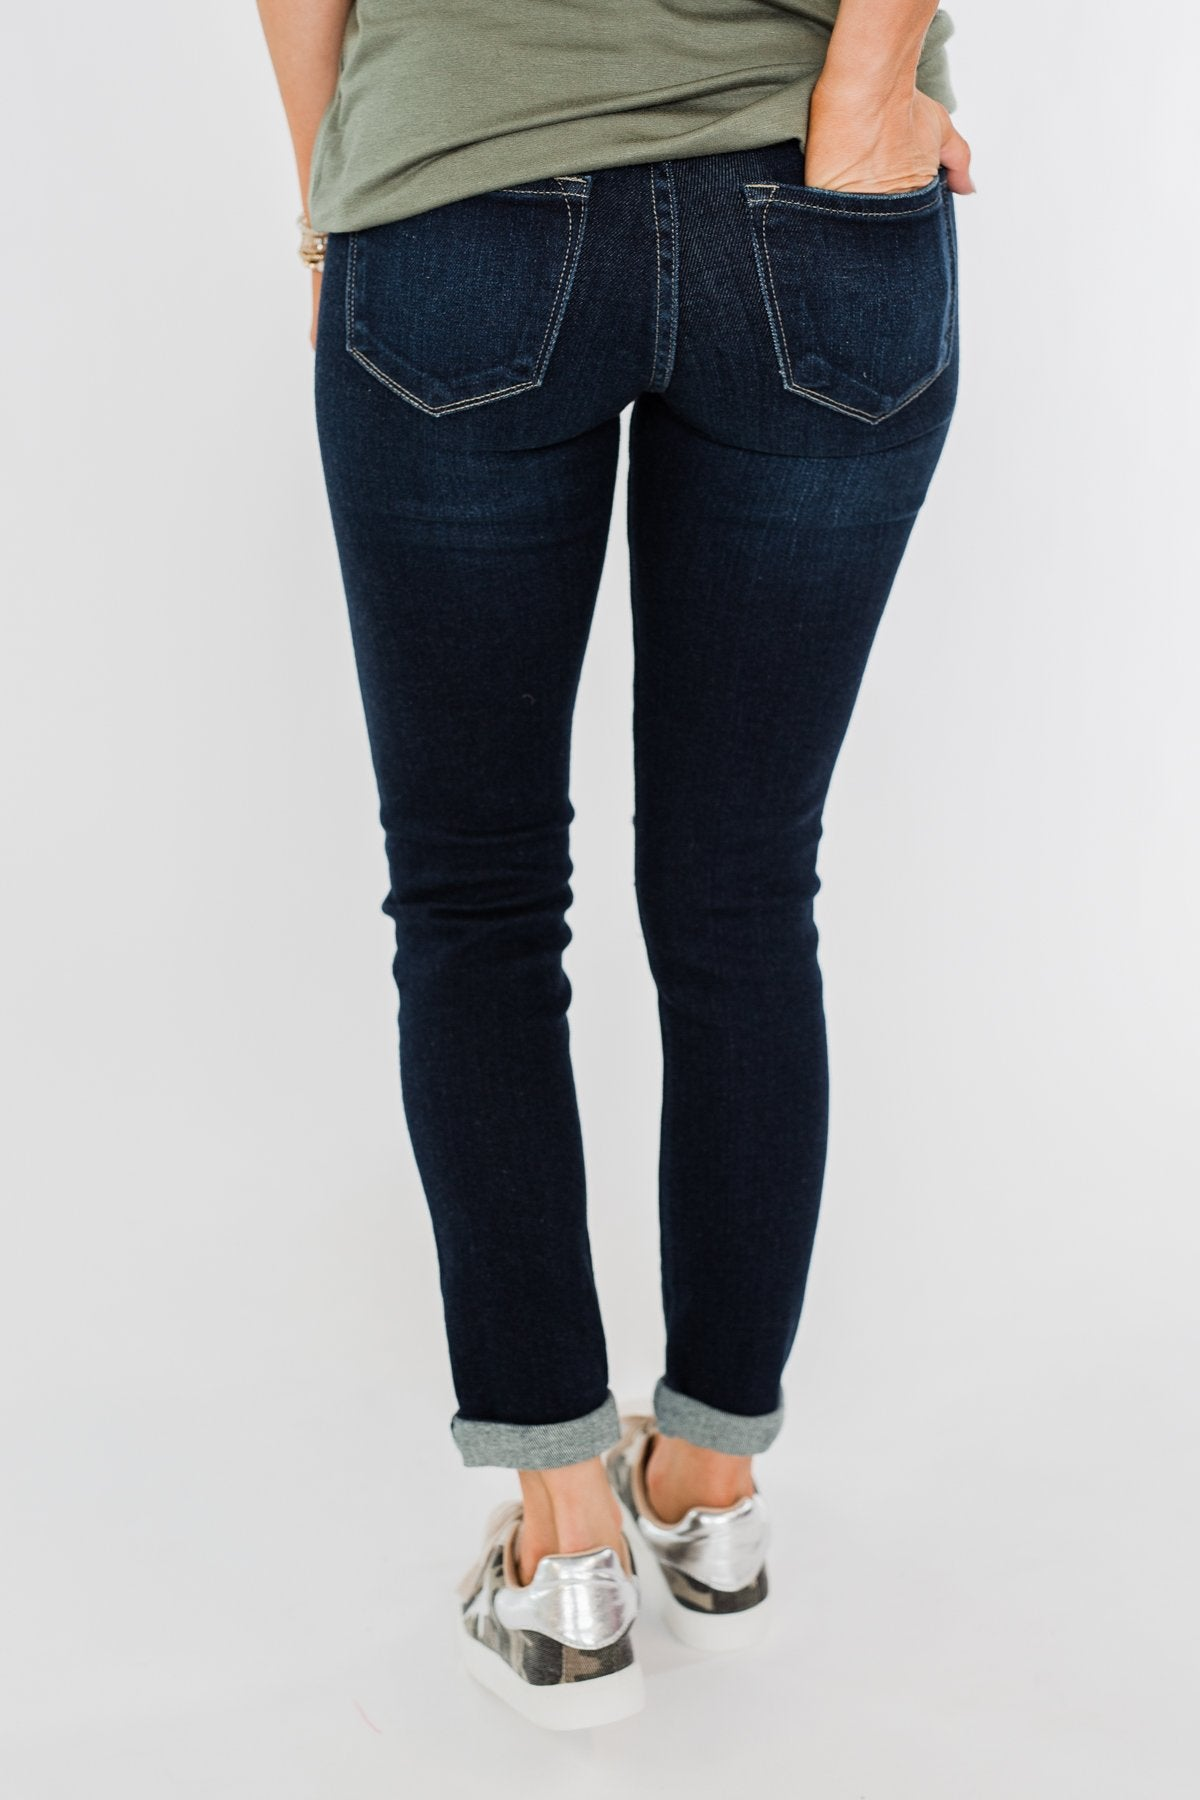 KanCan Skinny Jeans- Kendall Wash